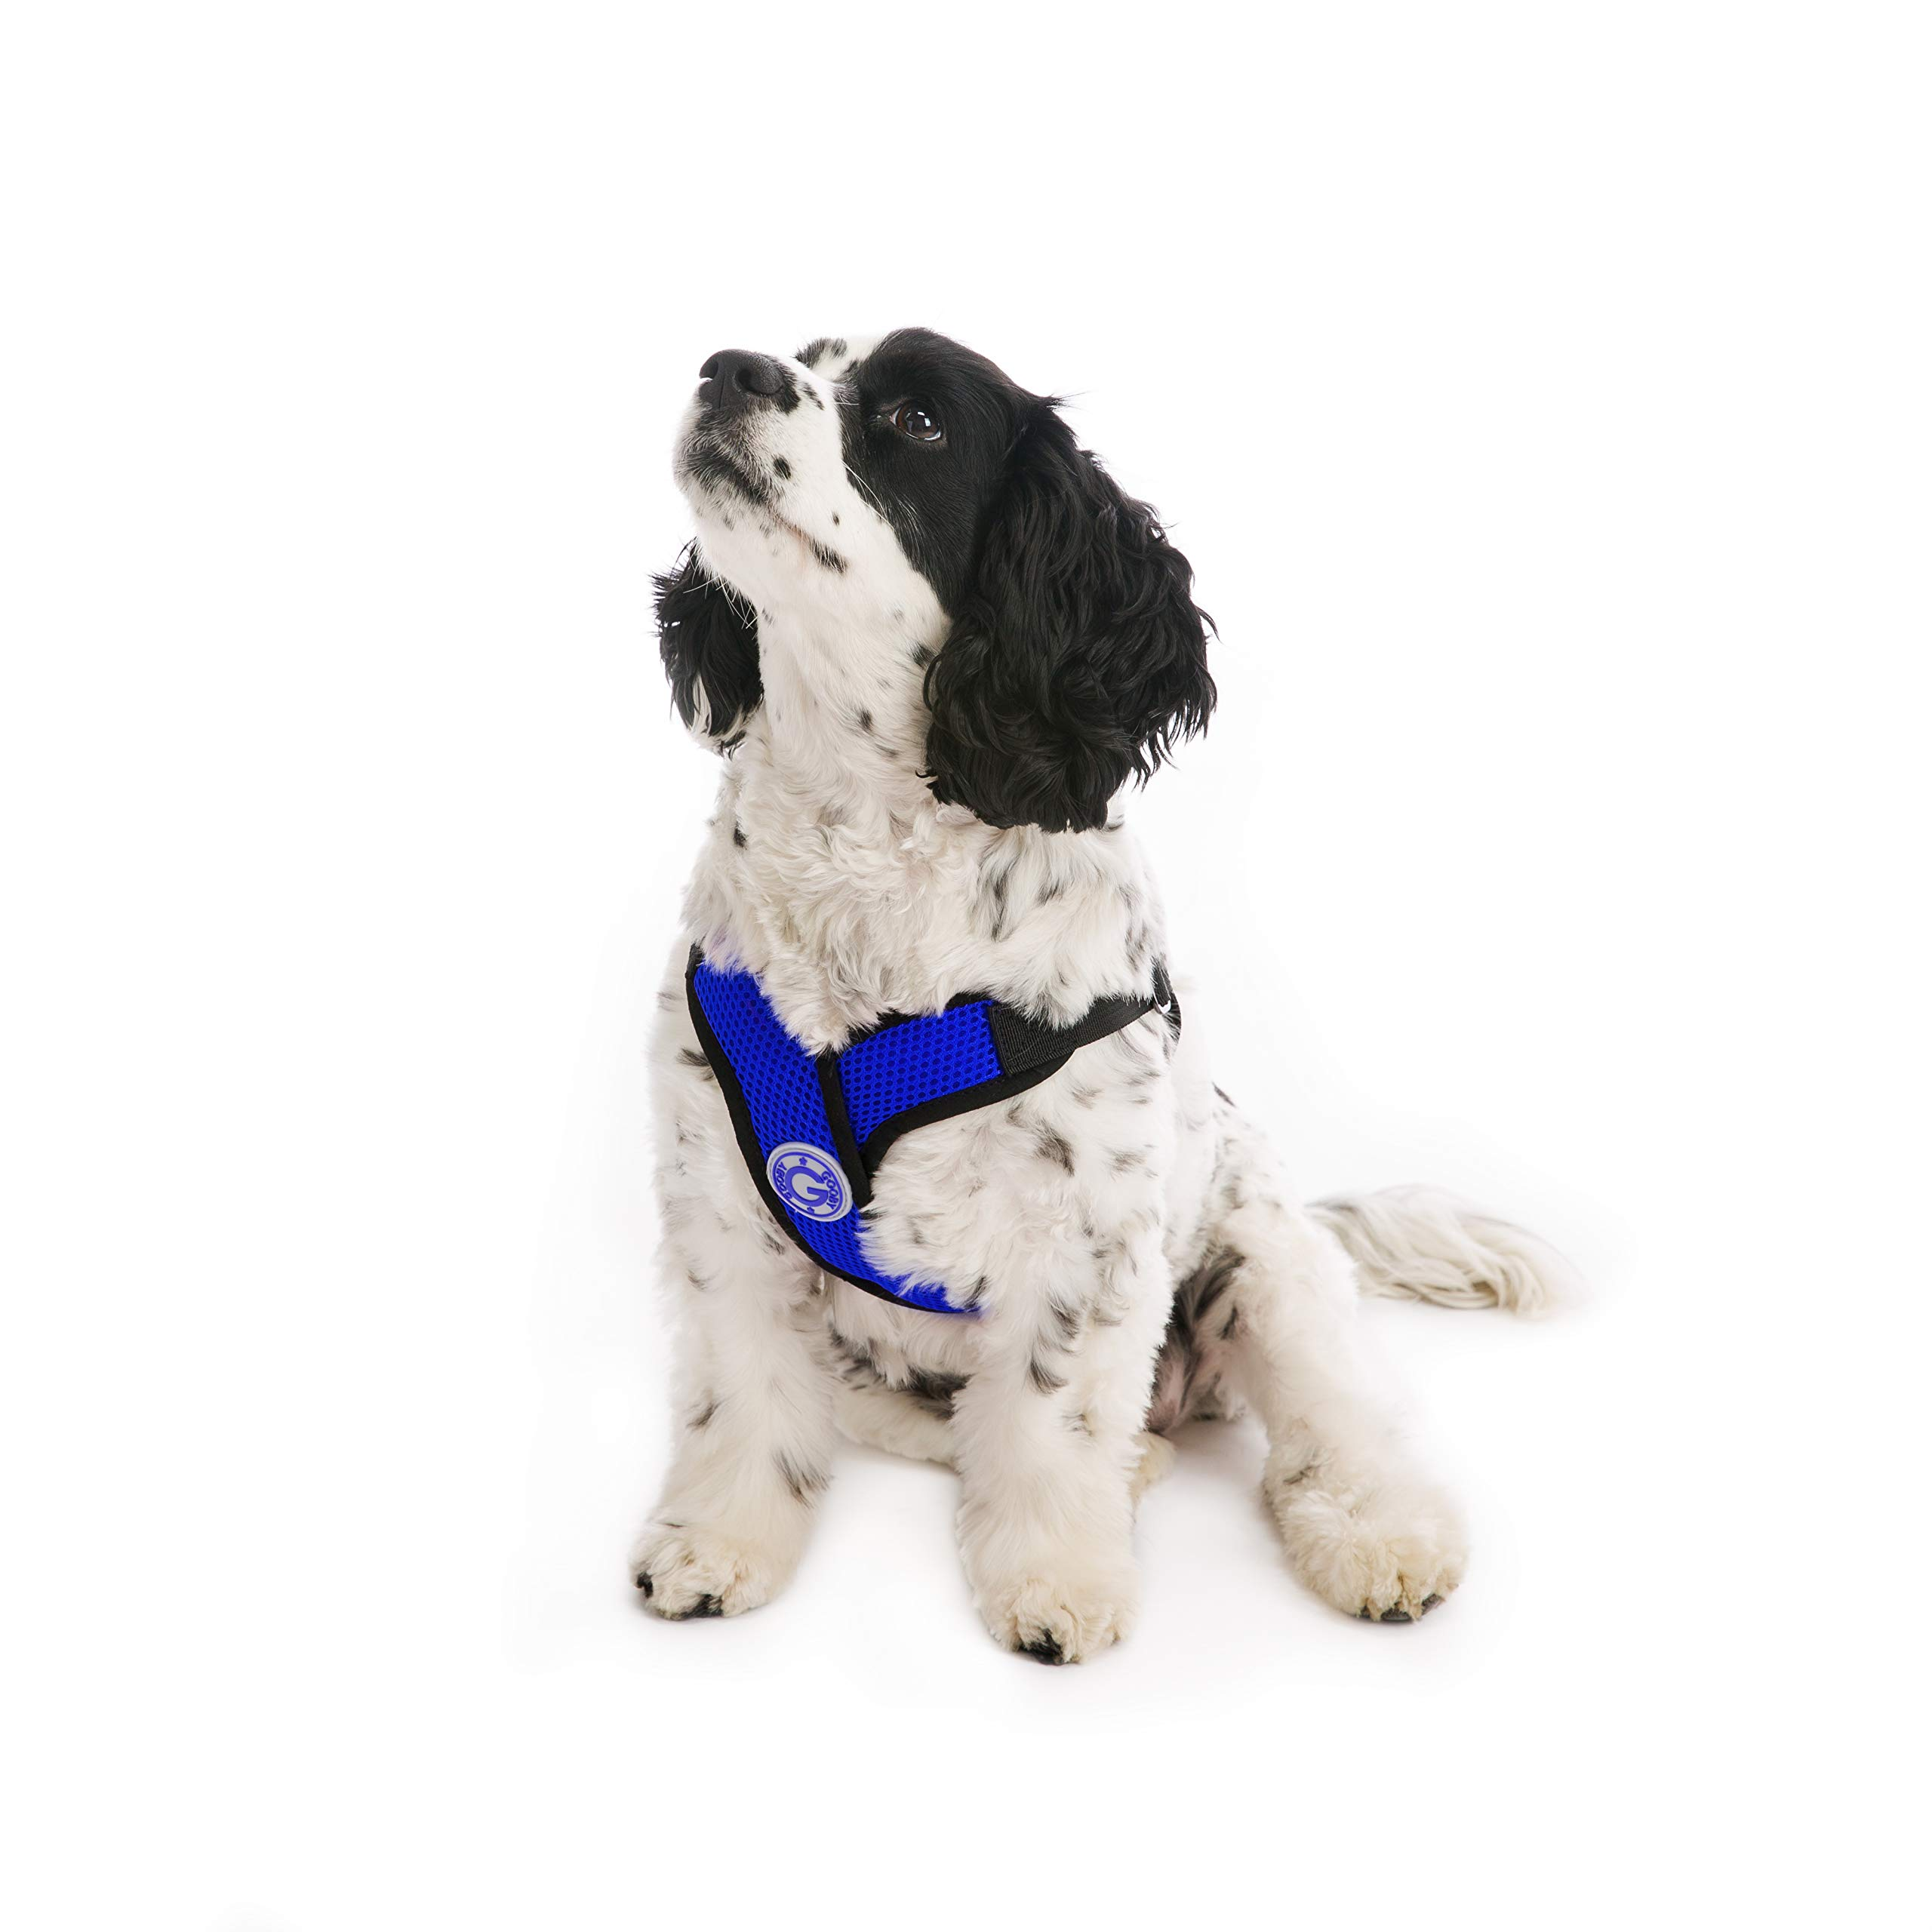 Gooby - Comfort X Step-in Harness, Choke Free Small Dog Harness with Micro Suede Trimming and Patented X Frame, Blue, X-Large